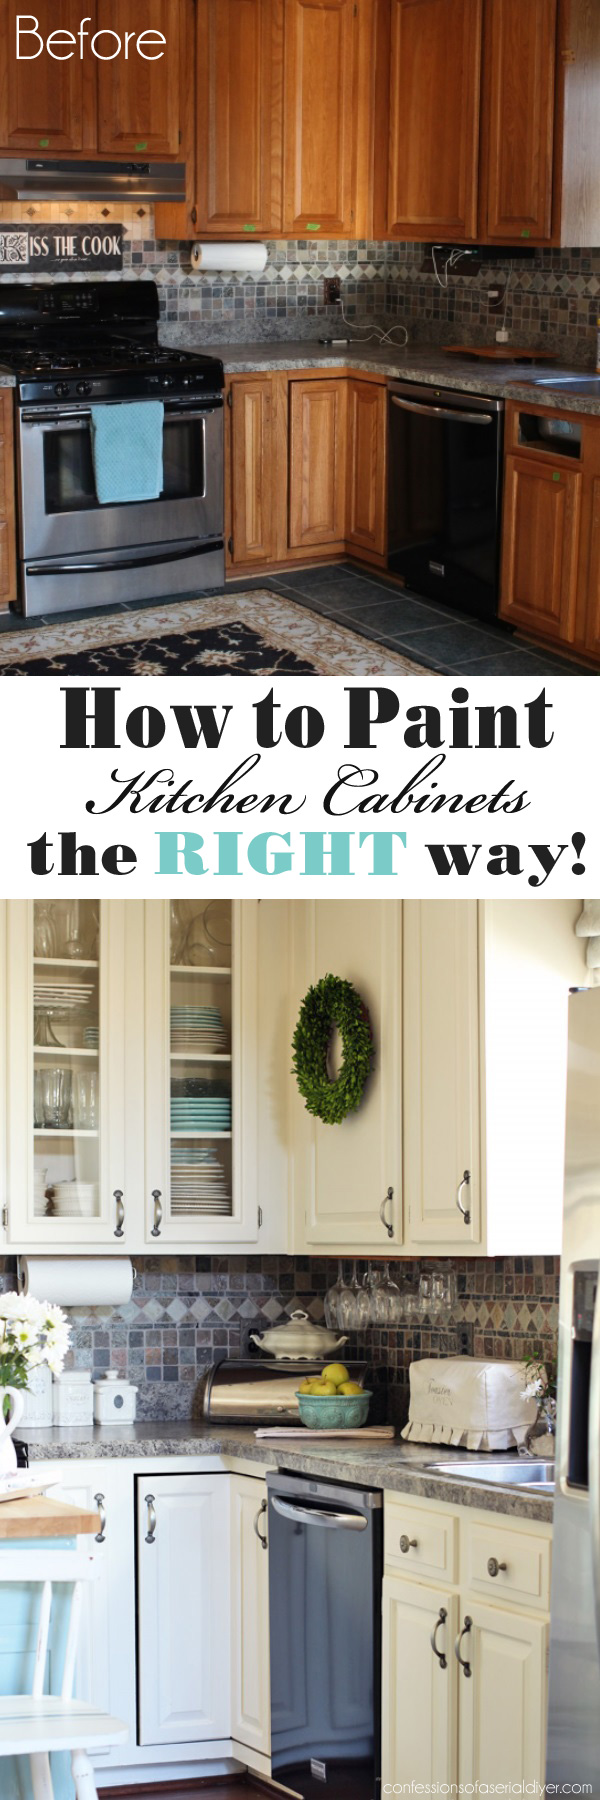 how to paint kitchen cabinets the right way from confessions of a serial doit